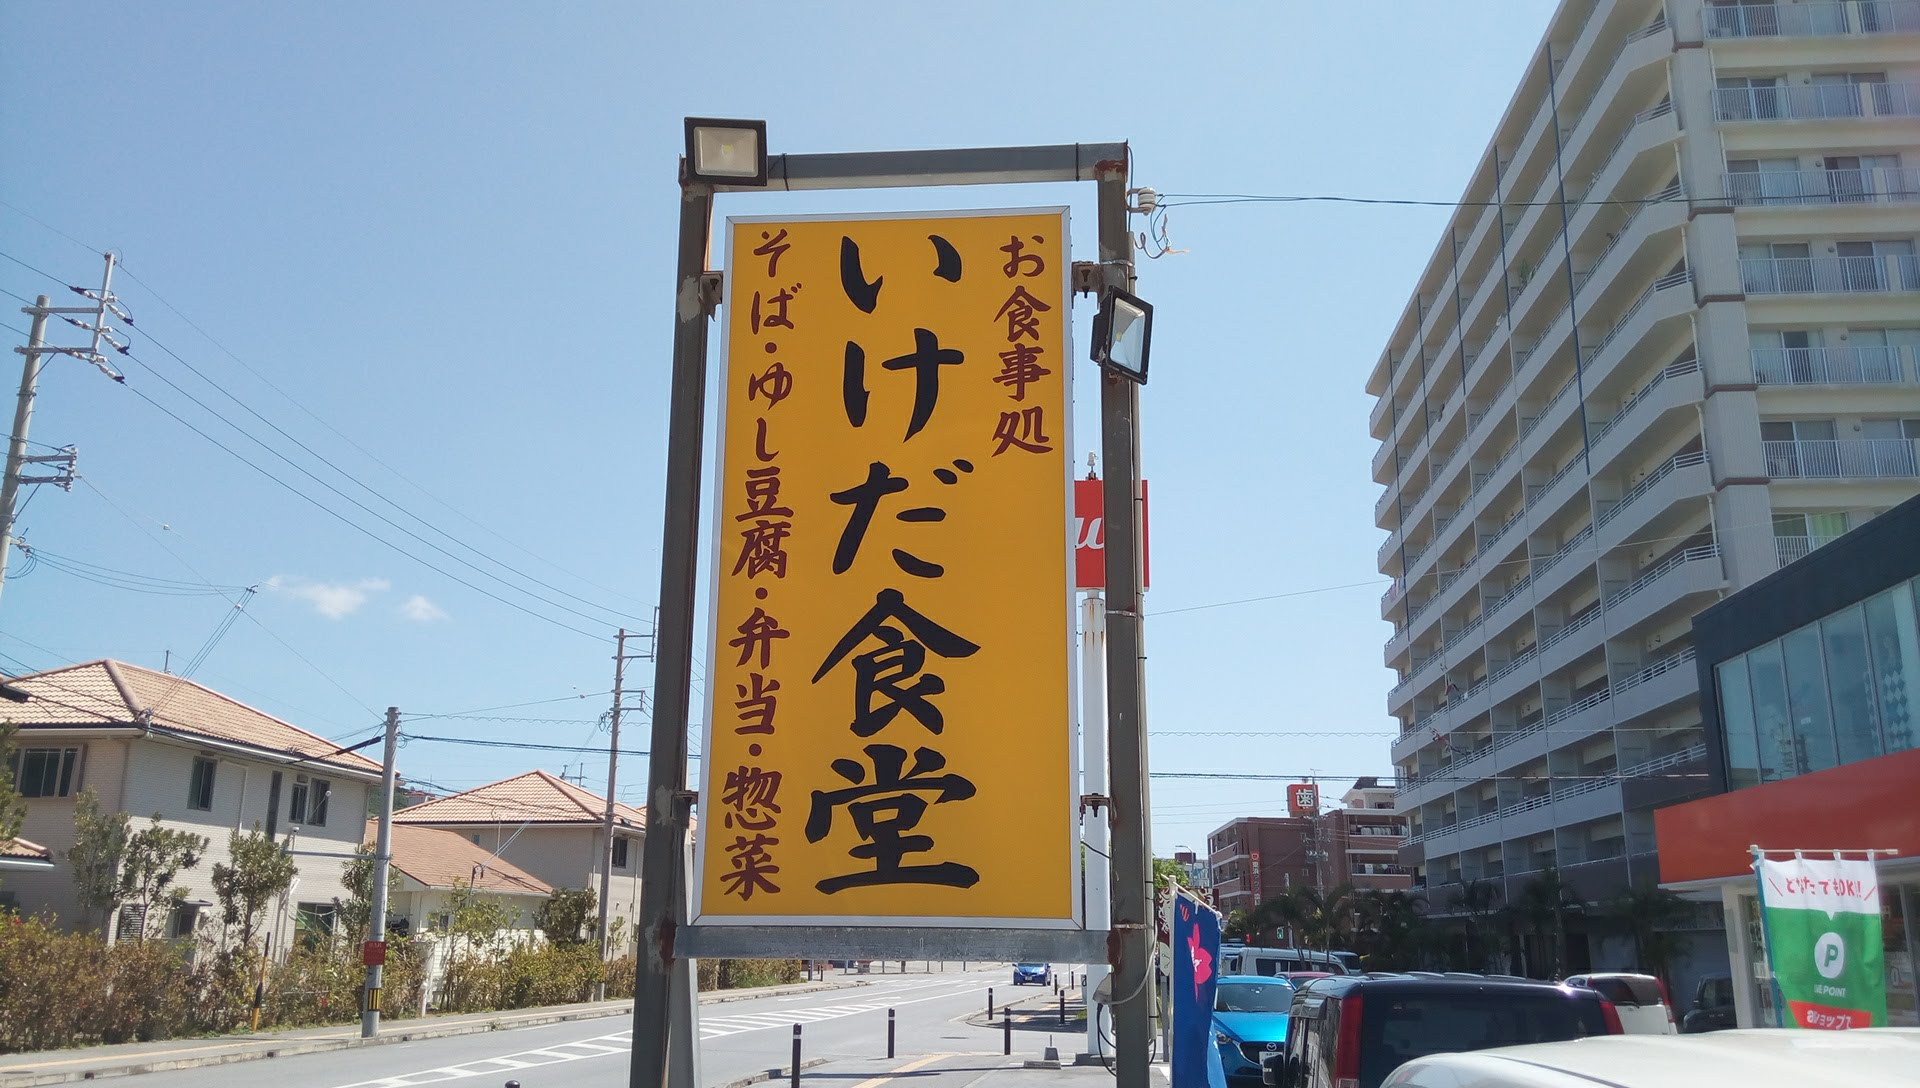 FuChanpuru and Okinawa soba are also cheap and good restaurant, Ikeda shokudou in Yonabaru town